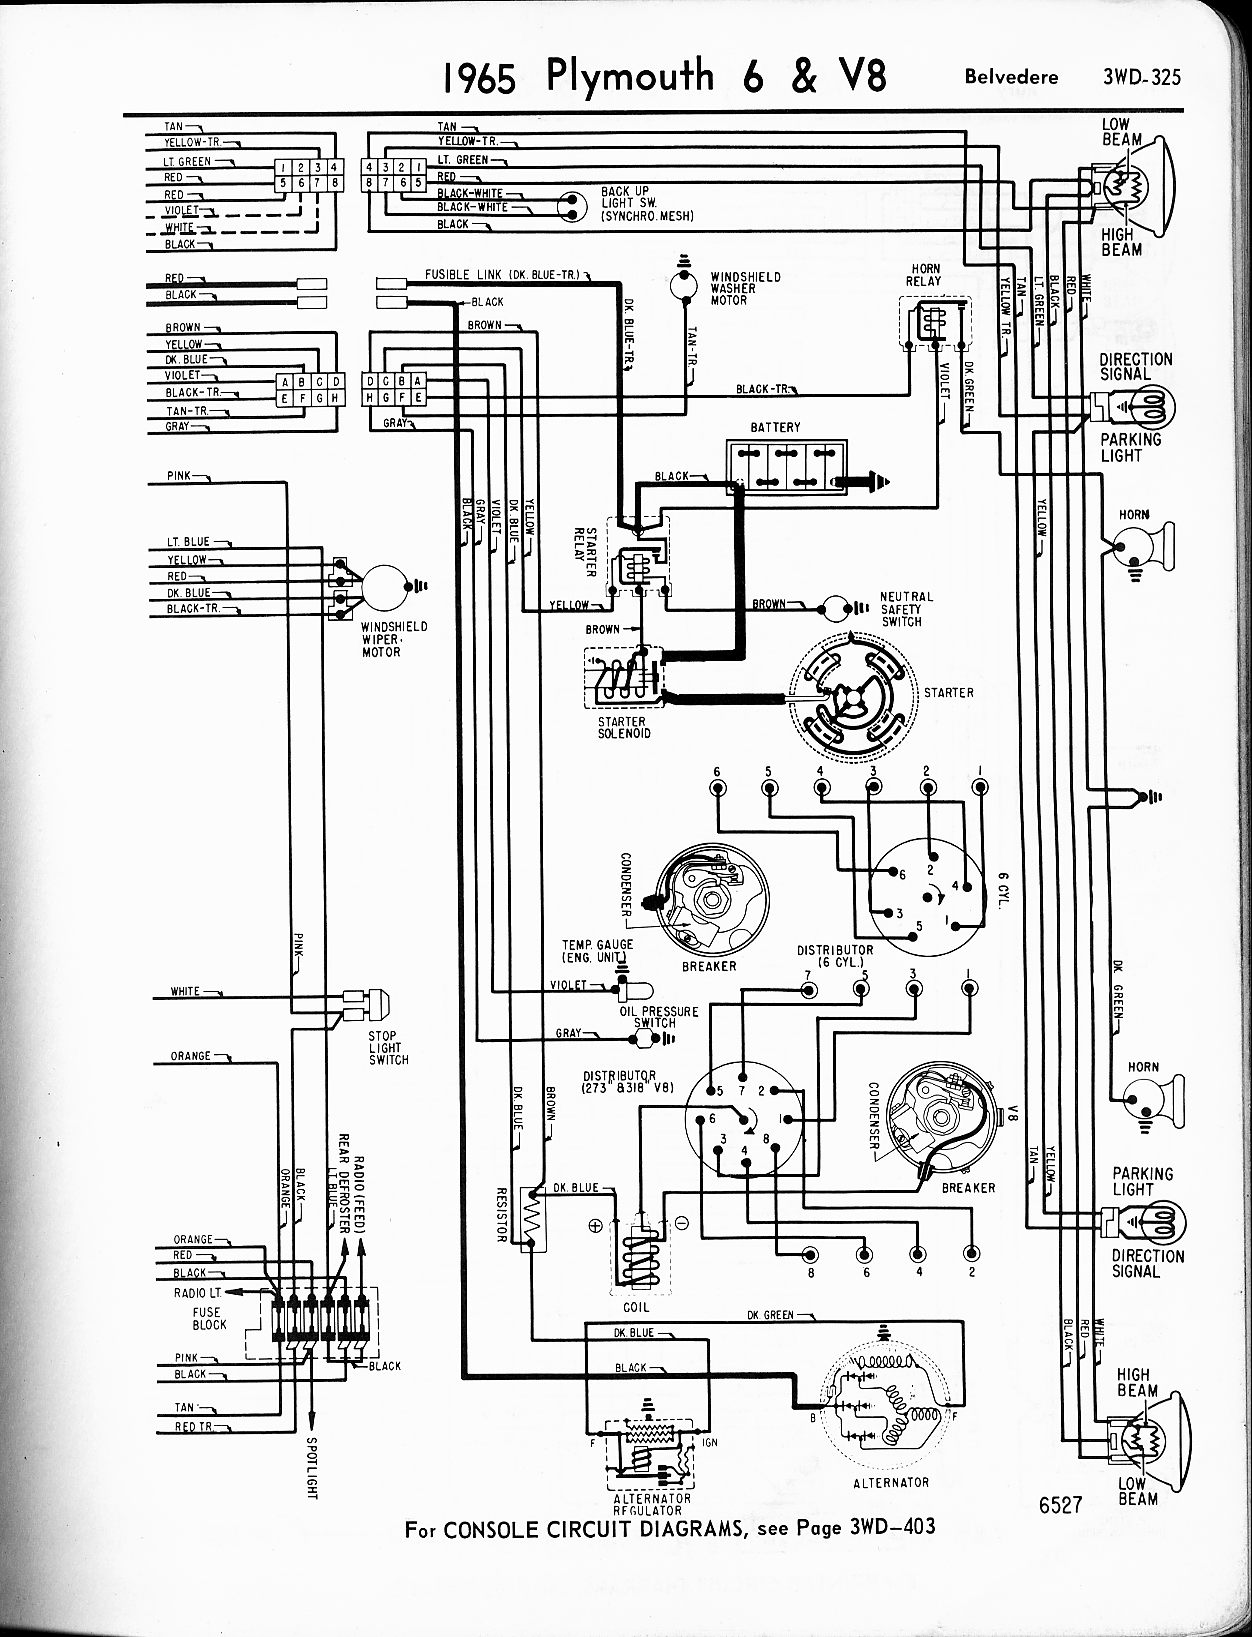 Awe Inspiring 56 Plymouth Wiring Diagram Wiring Diagram Wiring Cloud Oideiuggs Outletorg